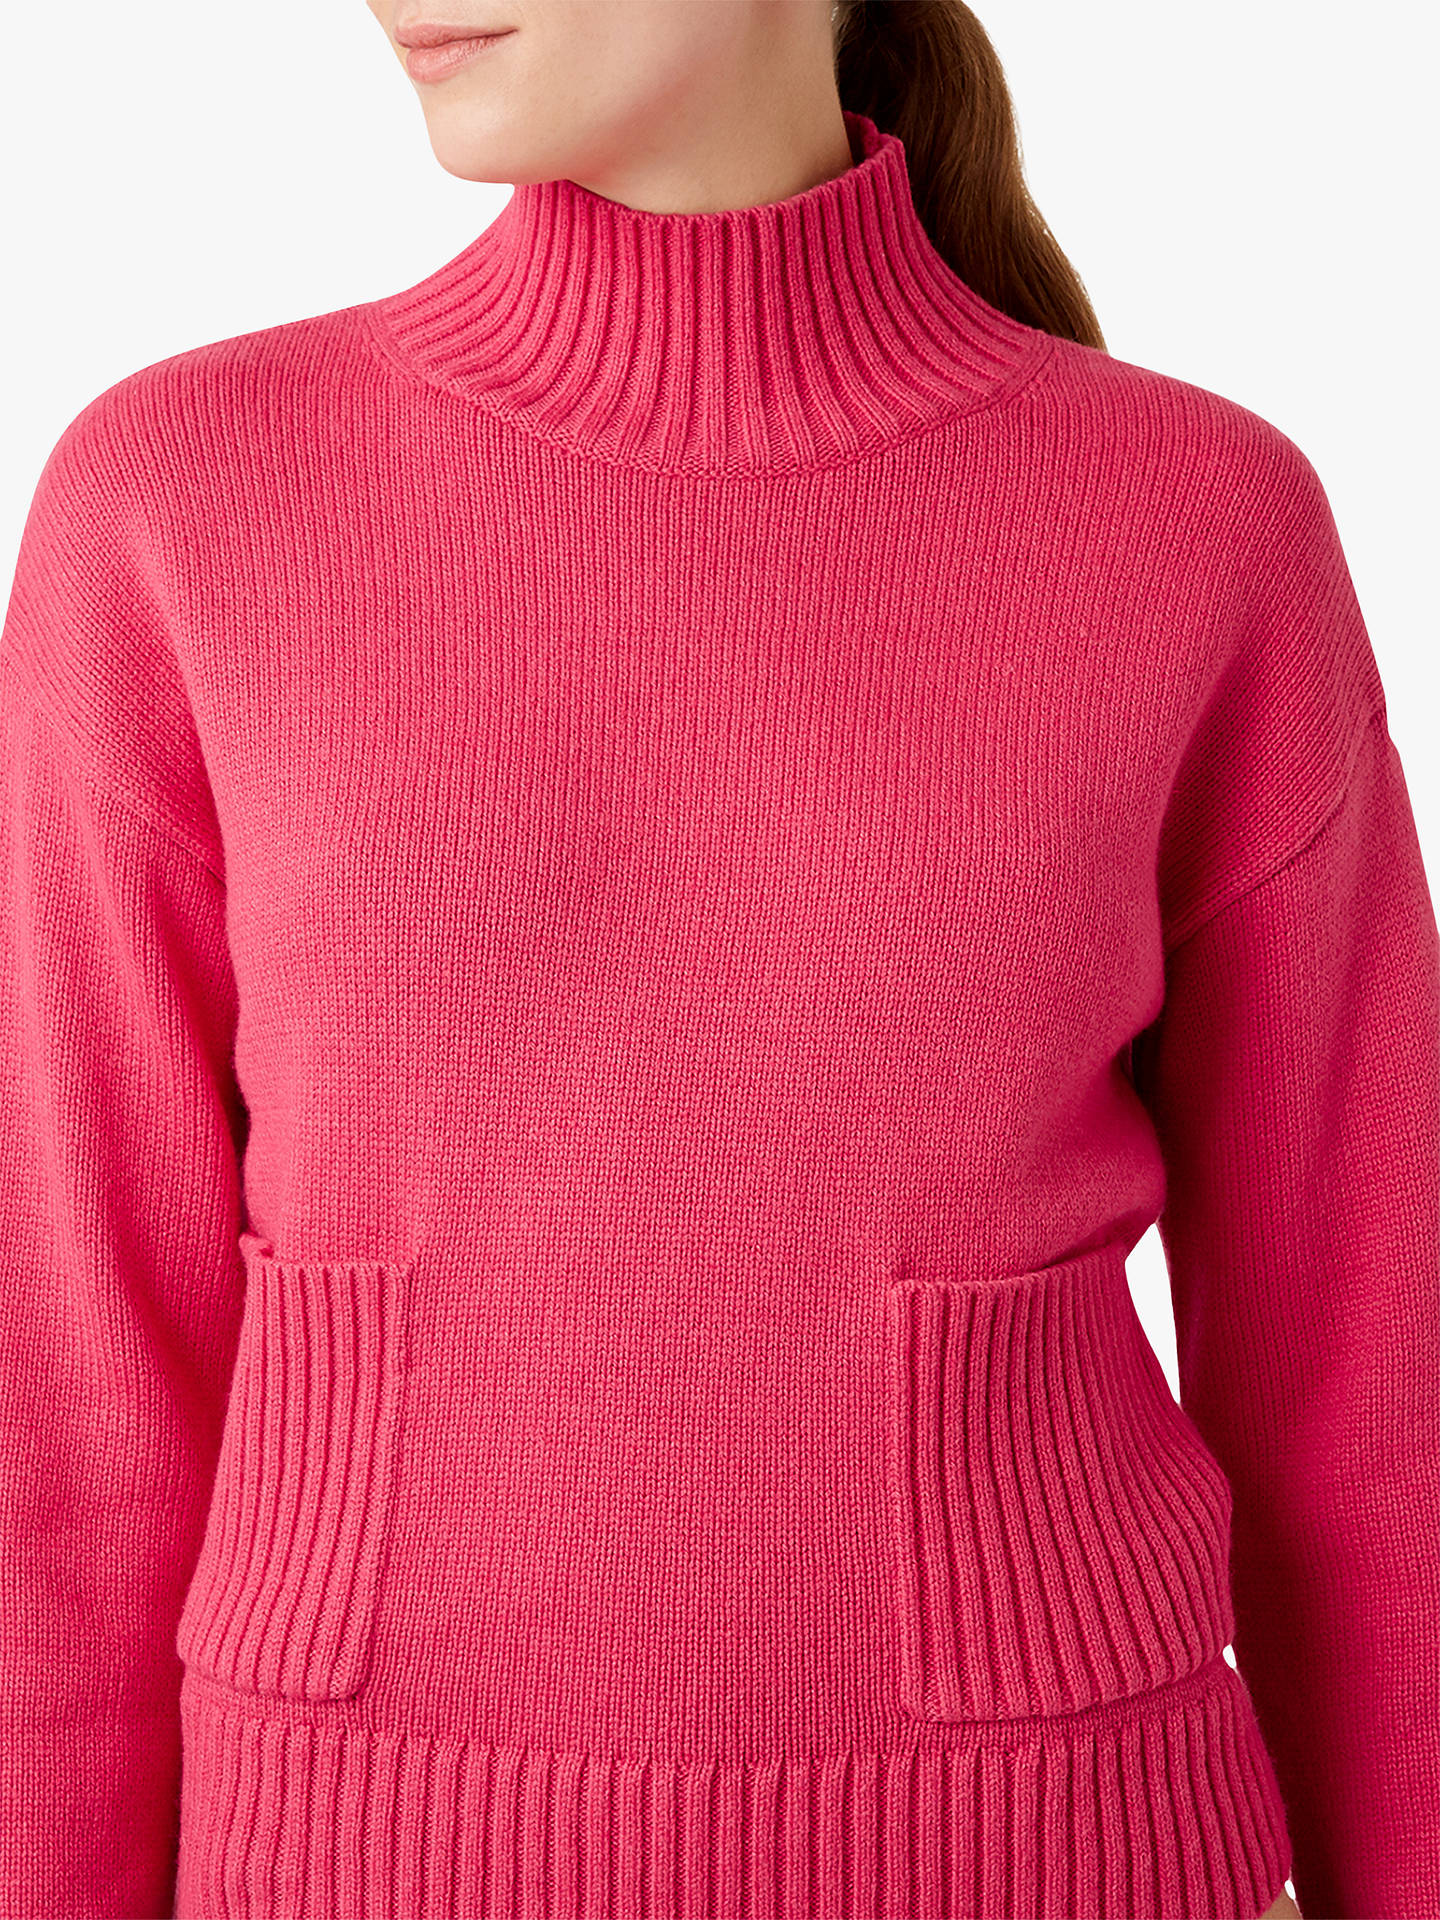 Buy Hobbs Carla Wool Blend Ribbed Jumper, Hot Pink, XS Online at johnlewis.com